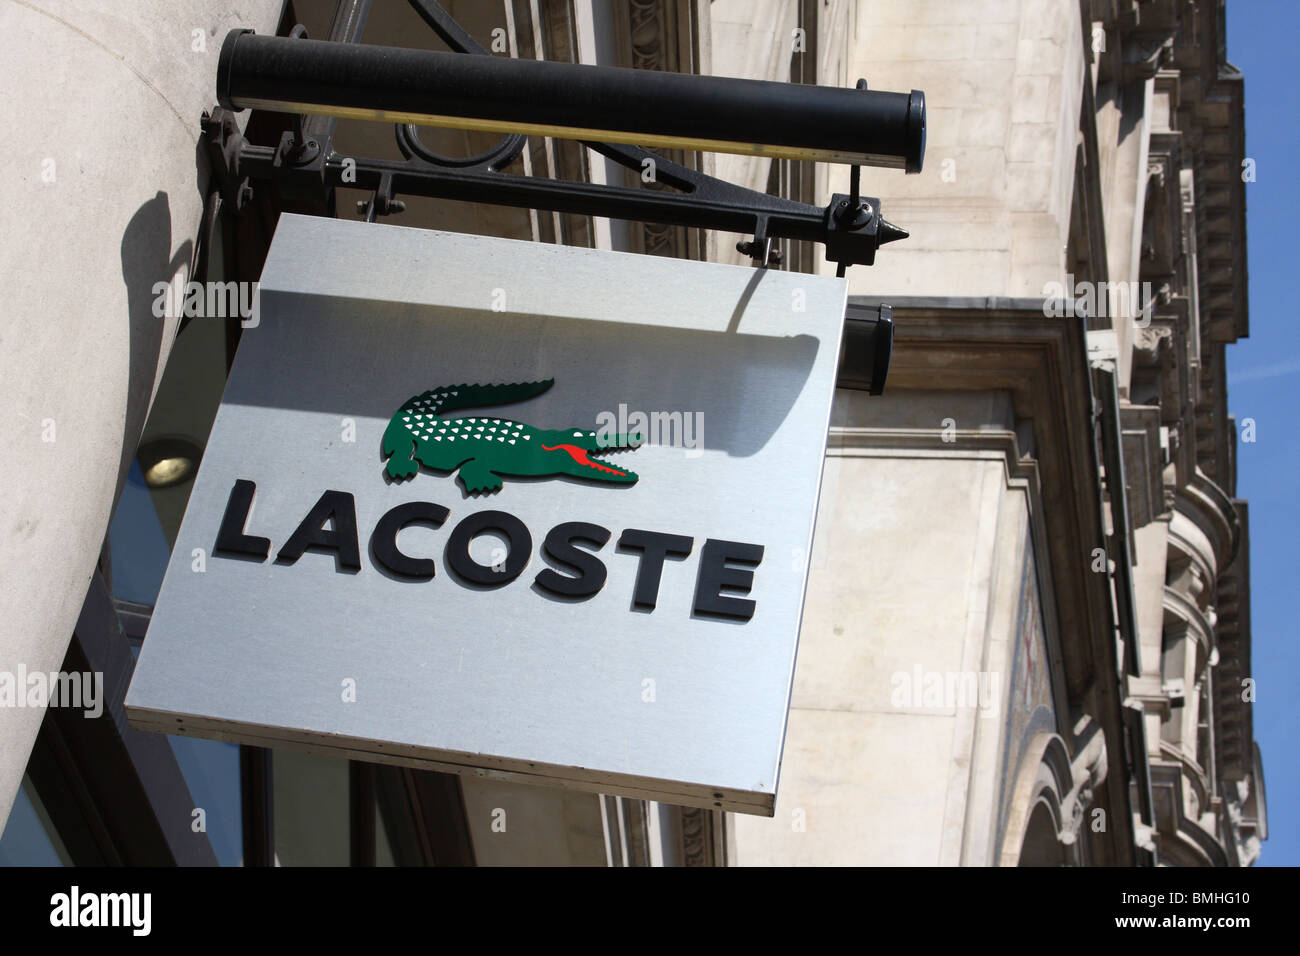 cheaper better latest Lacoste Outlet Shop Stock Photos & Lacoste Outlet Shop Stock ...